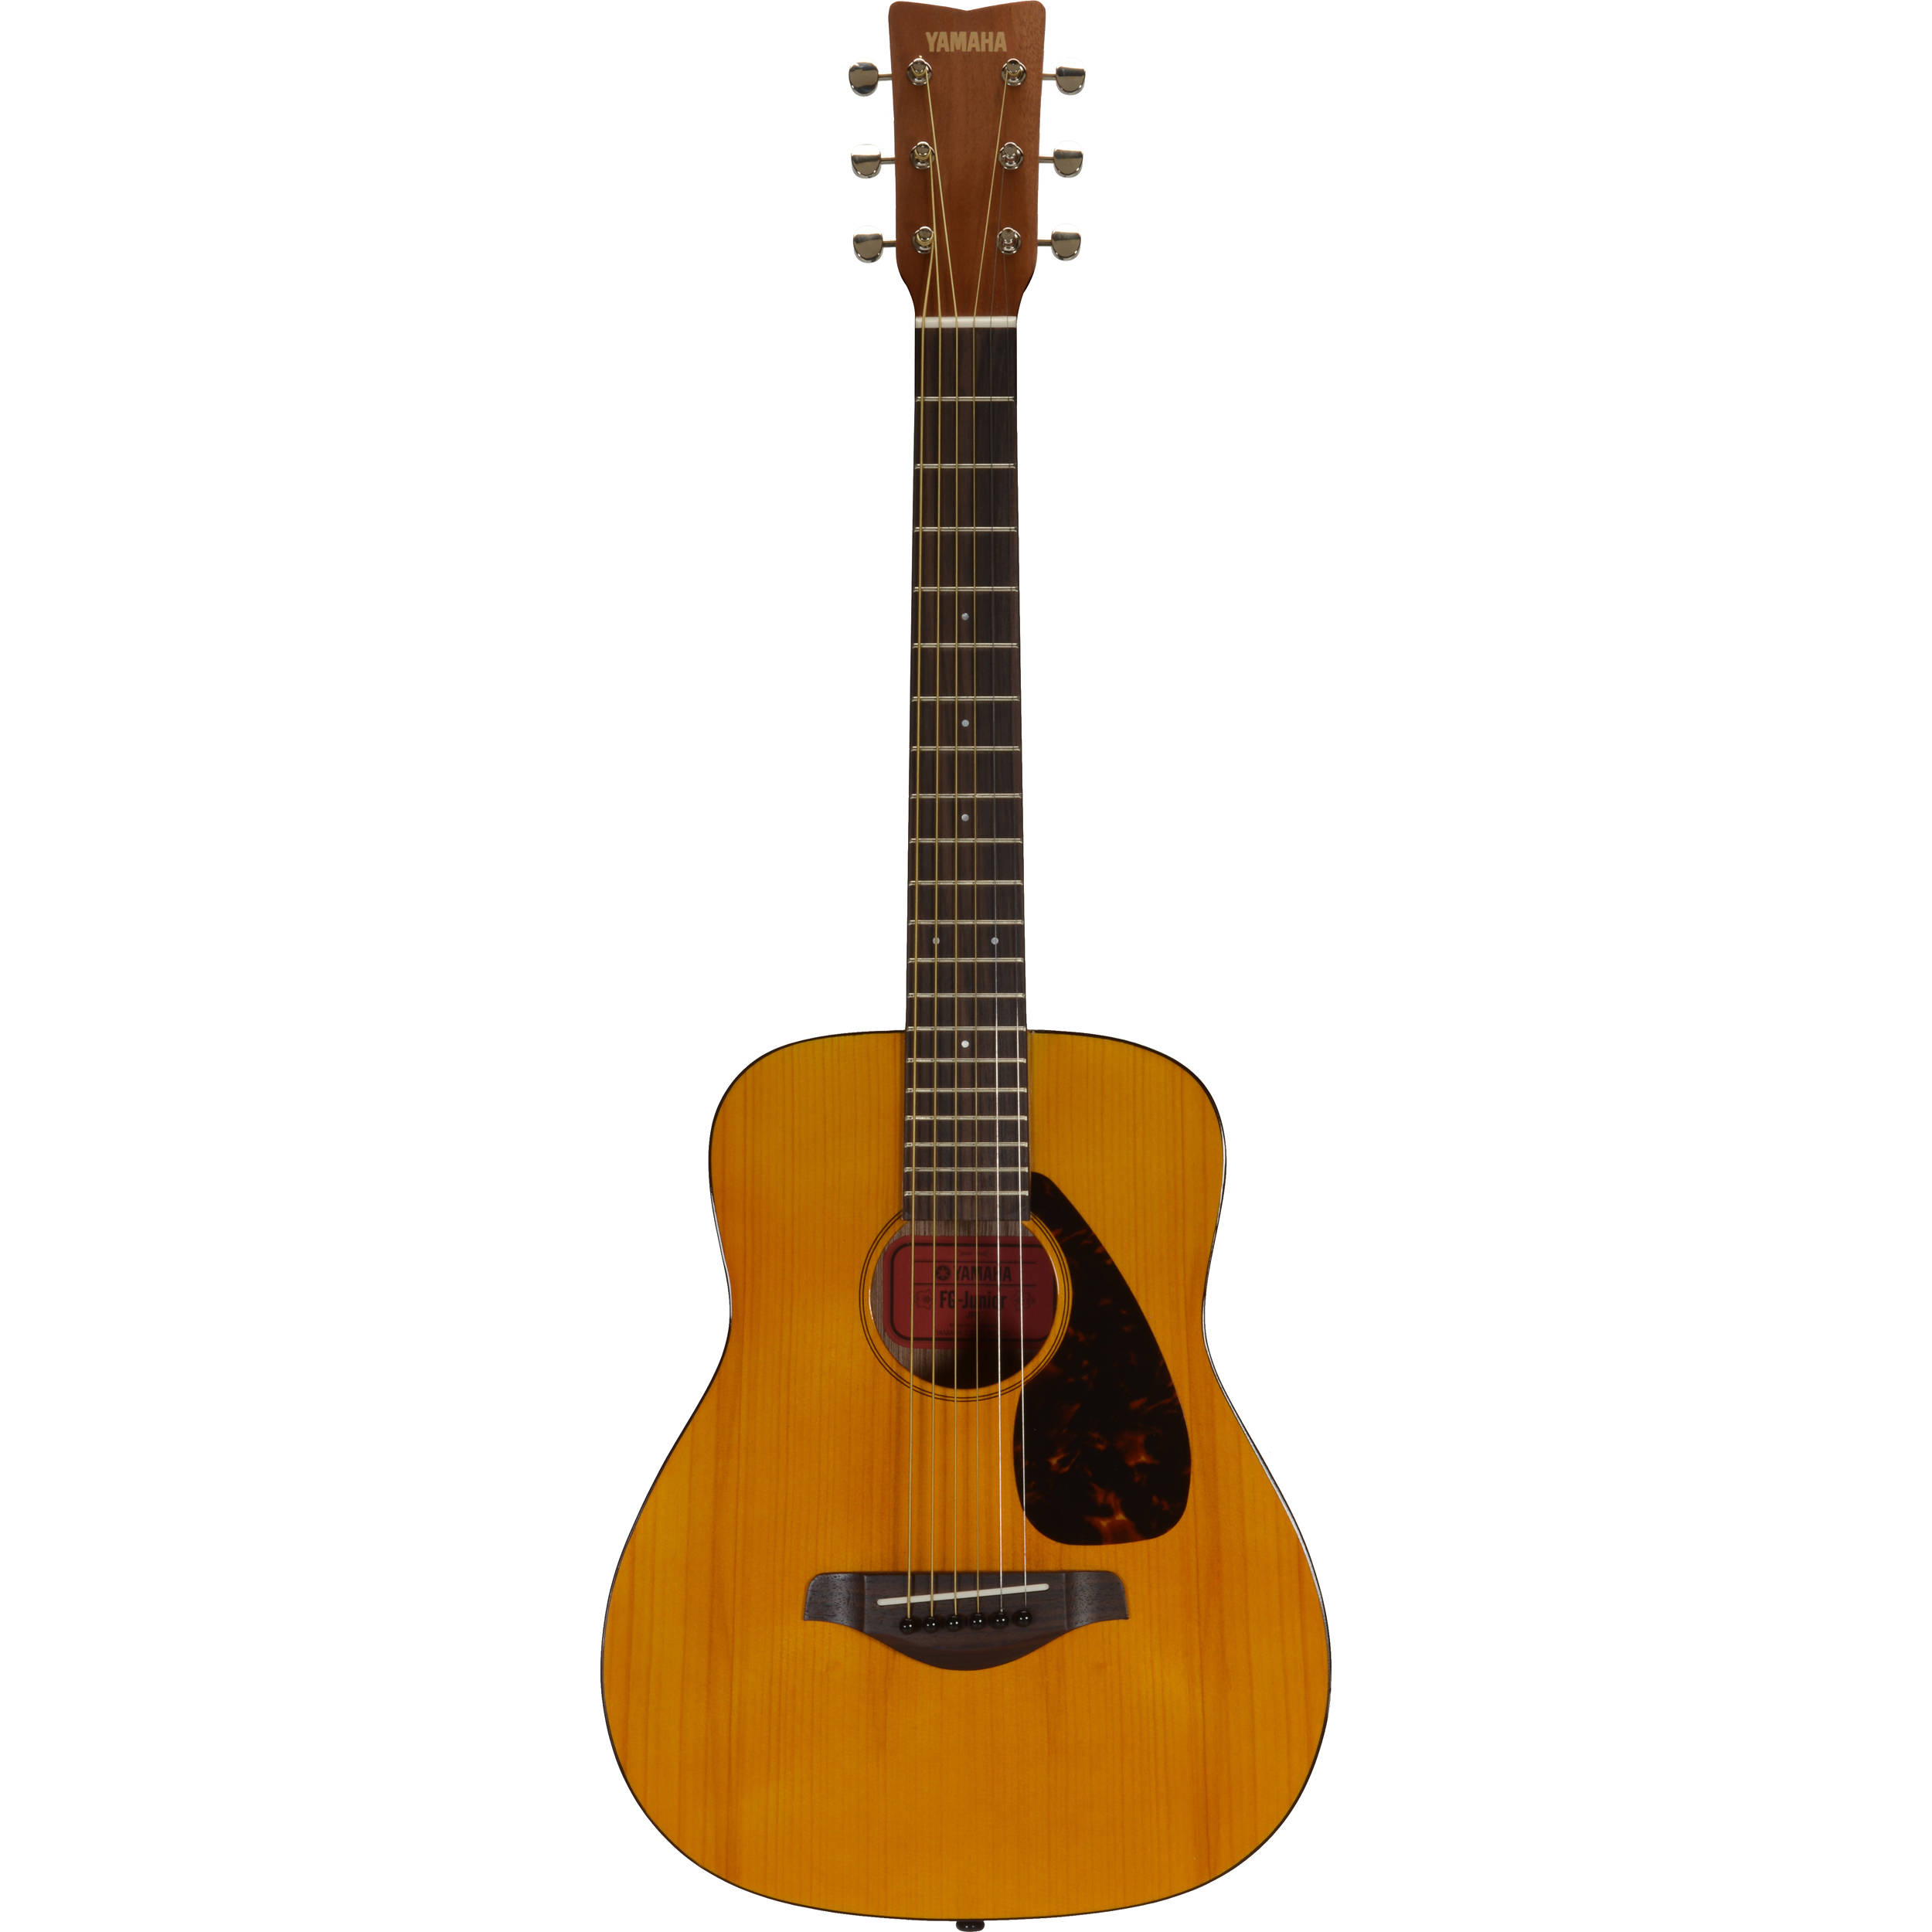 yamaha jr1 3 4 size mini folk guitar natural jr1 b h photo. Black Bedroom Furniture Sets. Home Design Ideas